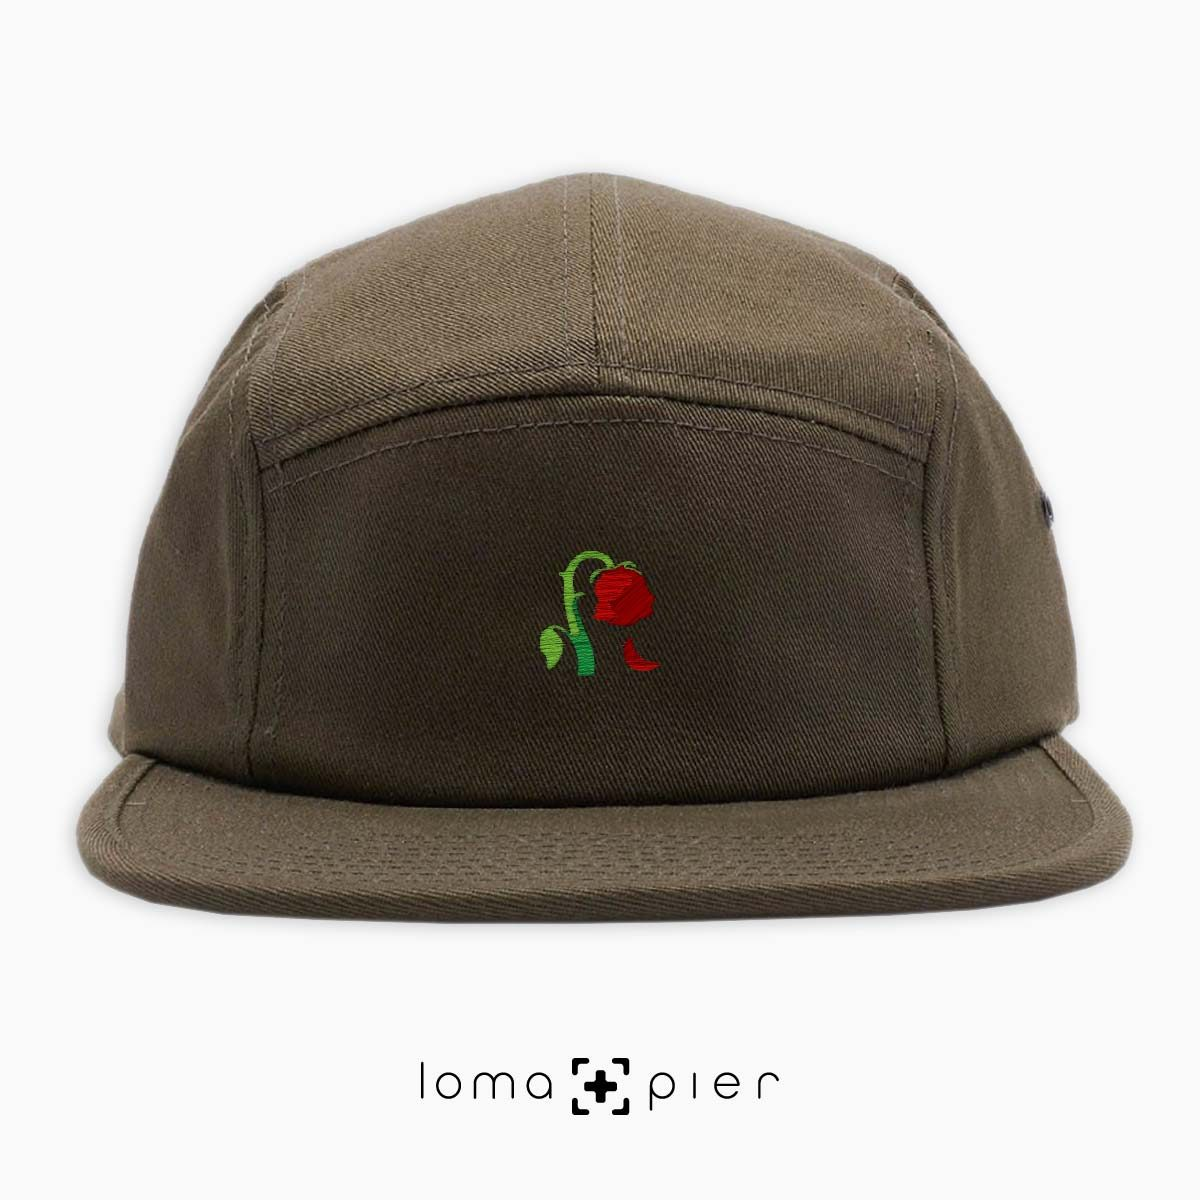 DYING ROSE EMOJI icon embroidered on an olive green cotton 5-panel hat by loma+pier hat store